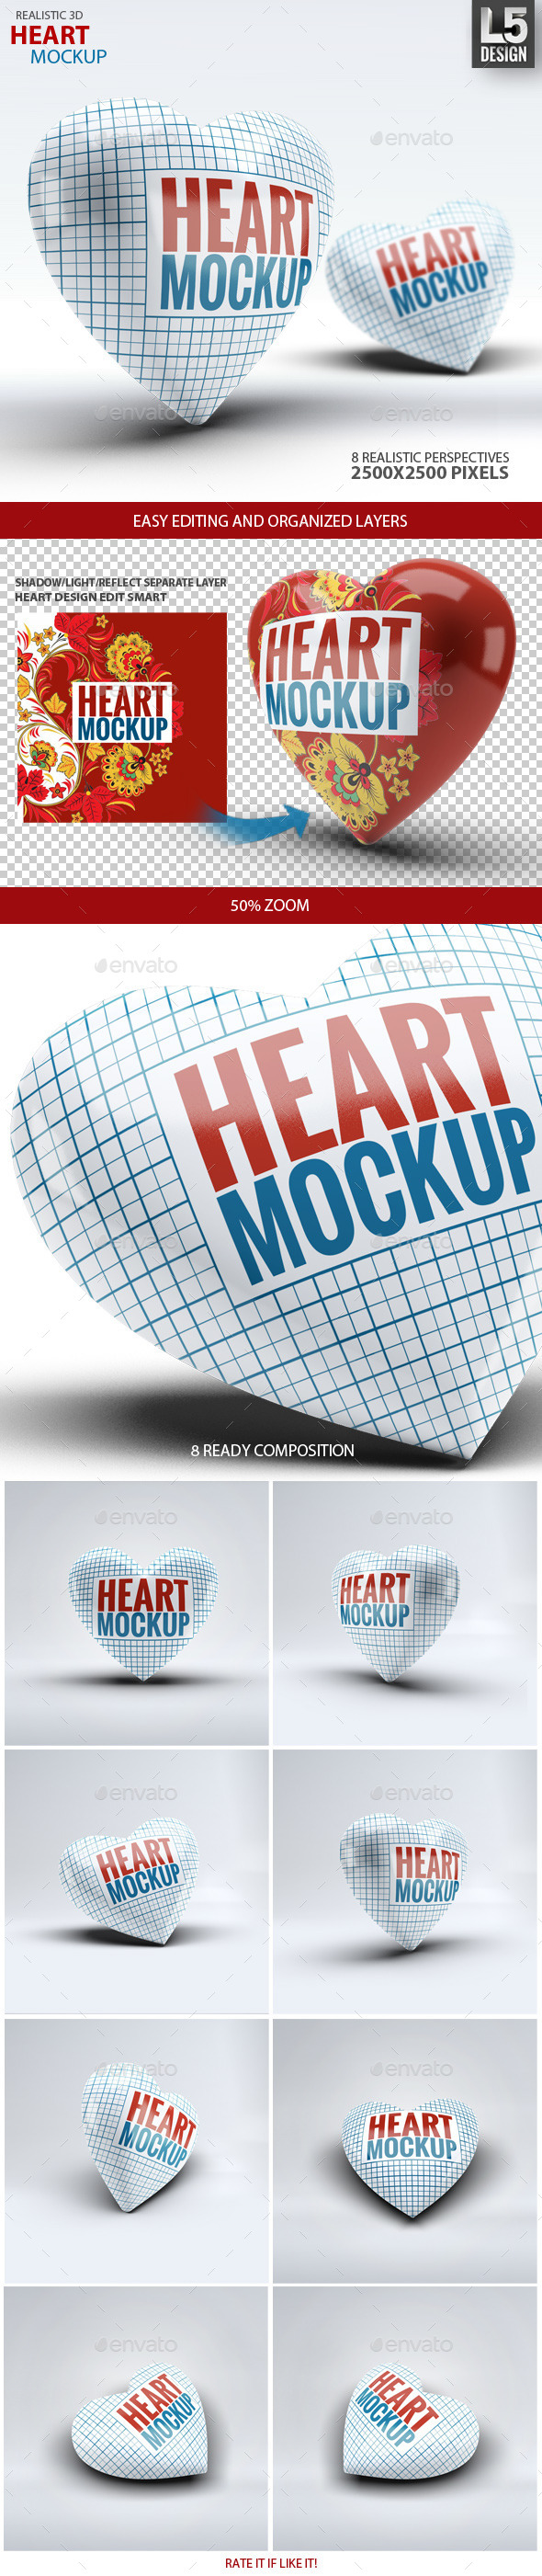 Heart Mock-Up - Miscellaneous Product Mock-Ups